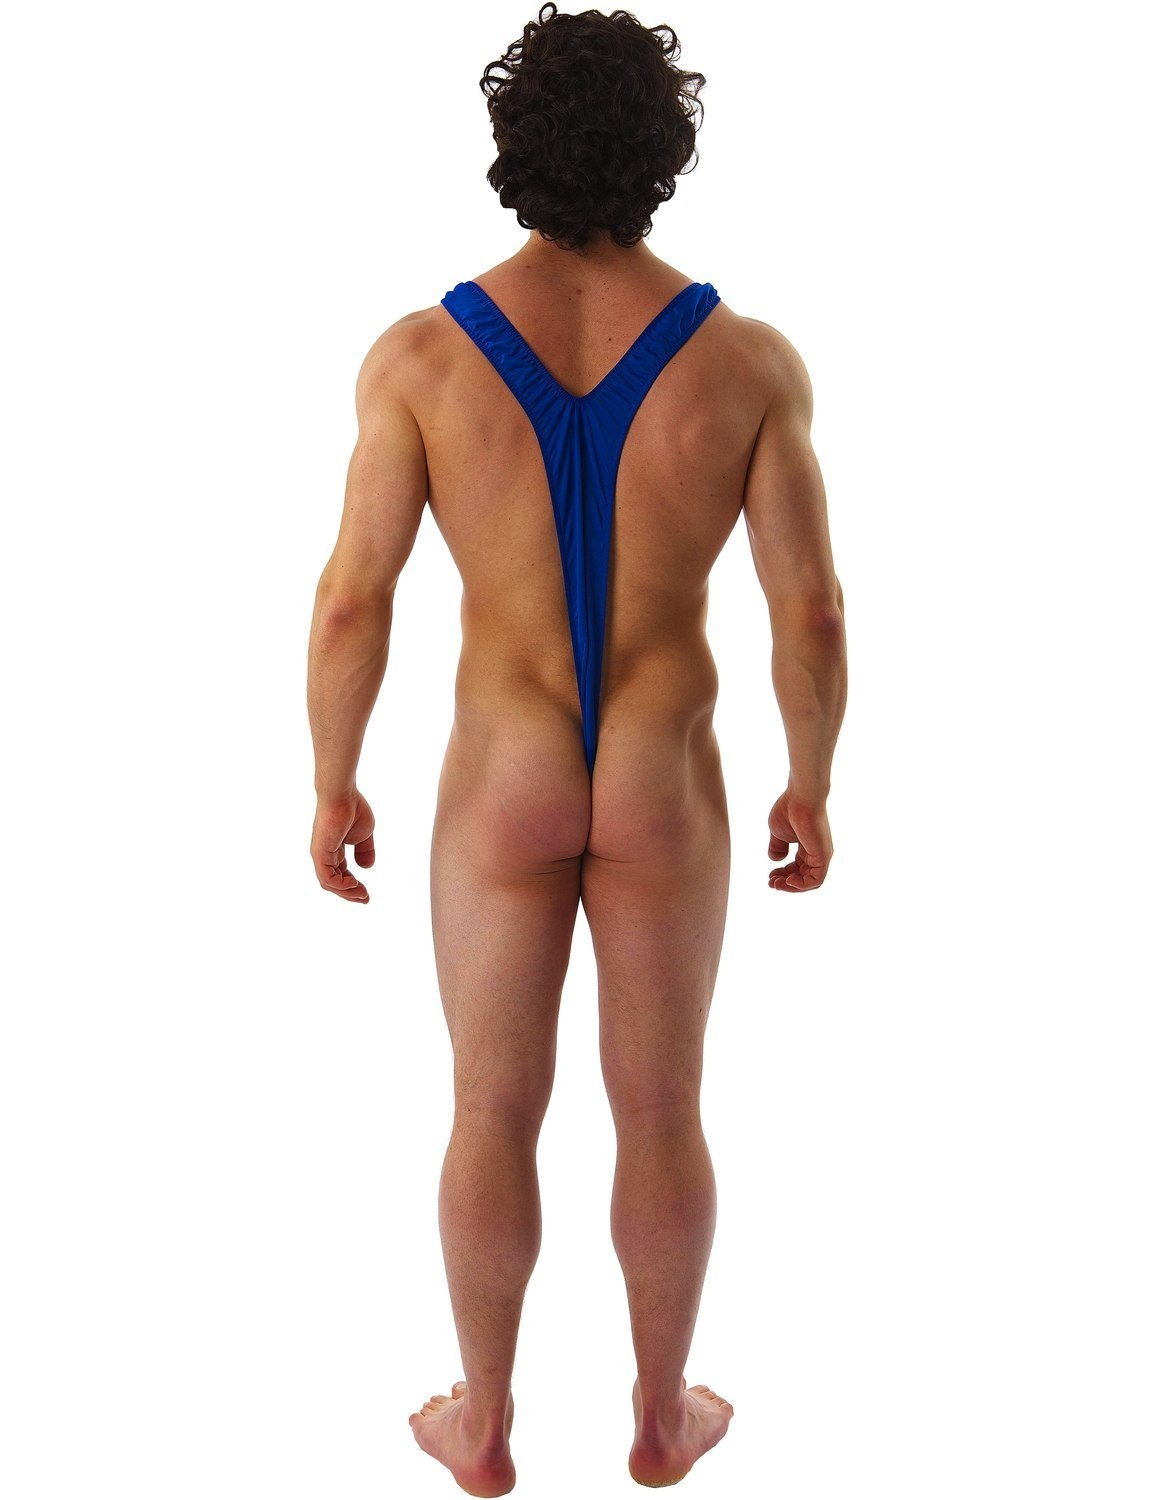 3031218ae1 Borat Mankini Thong Swimsuit (Blue) by fancy dress warehouse - Shop ...